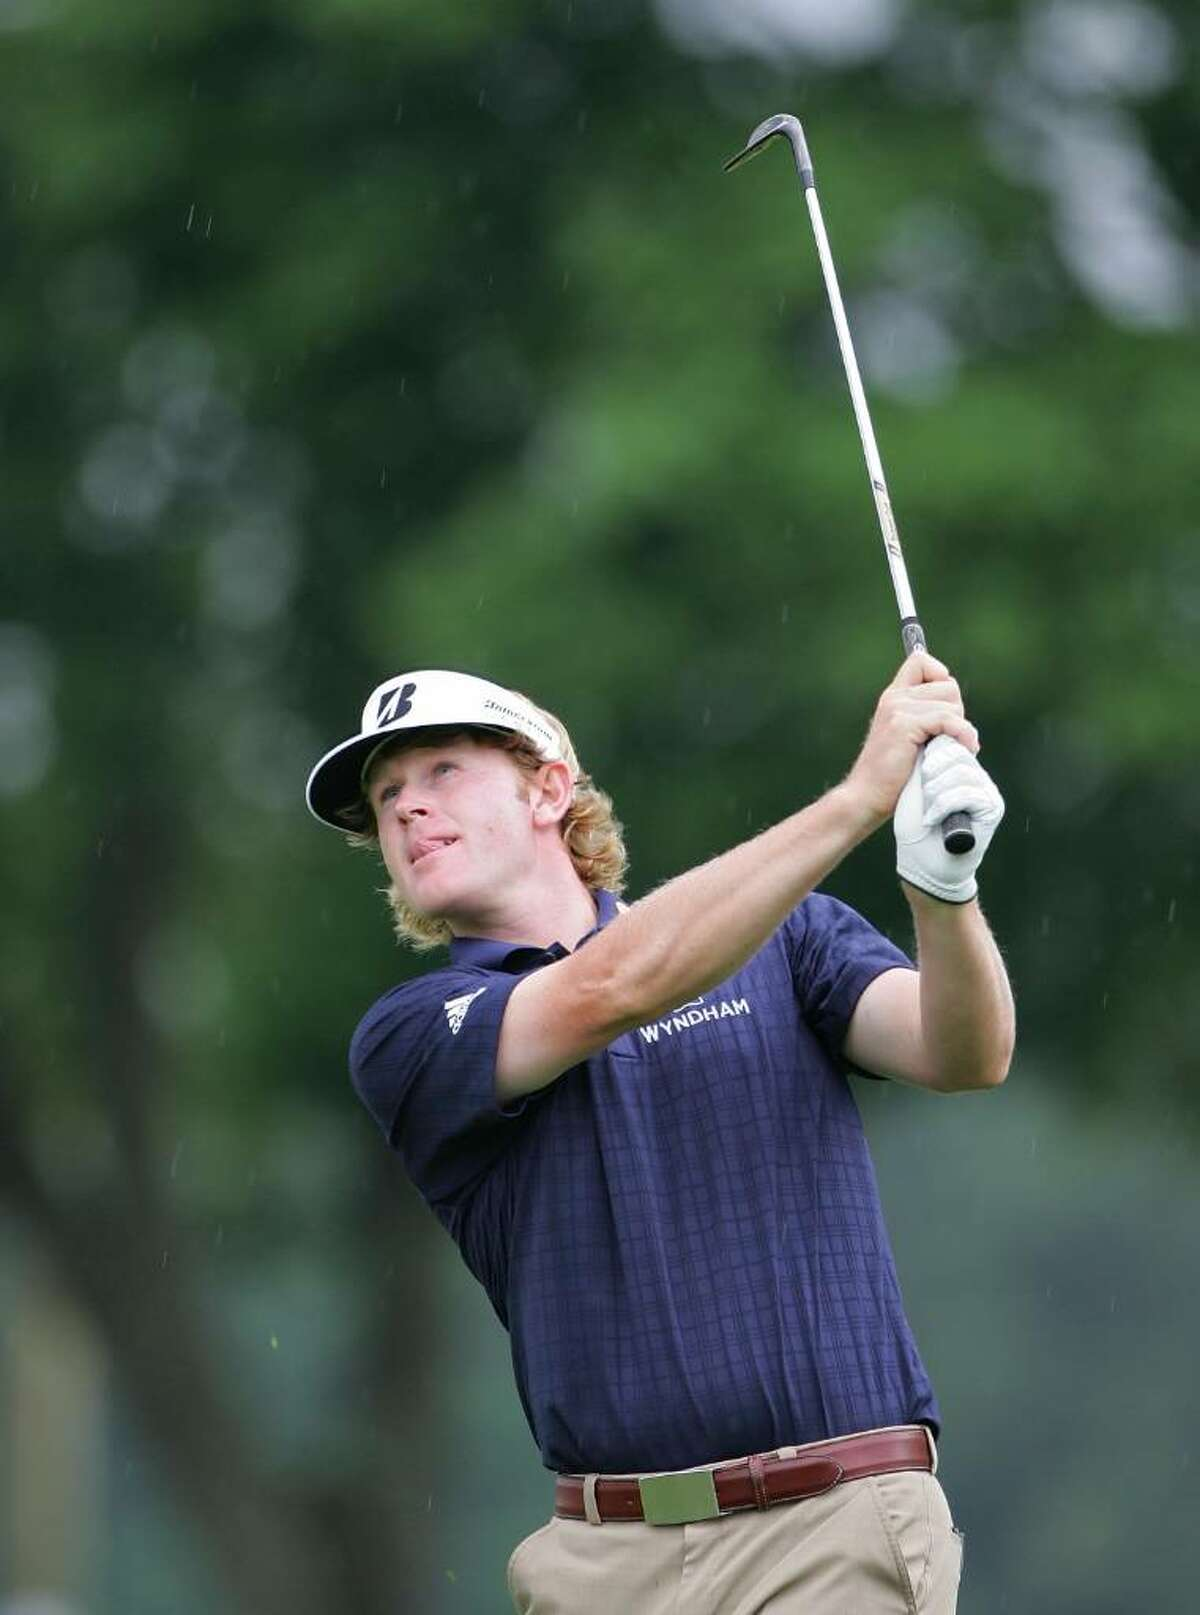 CROMWELL, CT - JUNE 24: Brandt Snedeker looks on during the first round of the Travelers Championship held at TPC River Highlands on June 24, 2010 in Cromwell, Connecticut. (Photo by Michael Cohen/Getty Images) *** Local Caption *** Brandt Snedeker